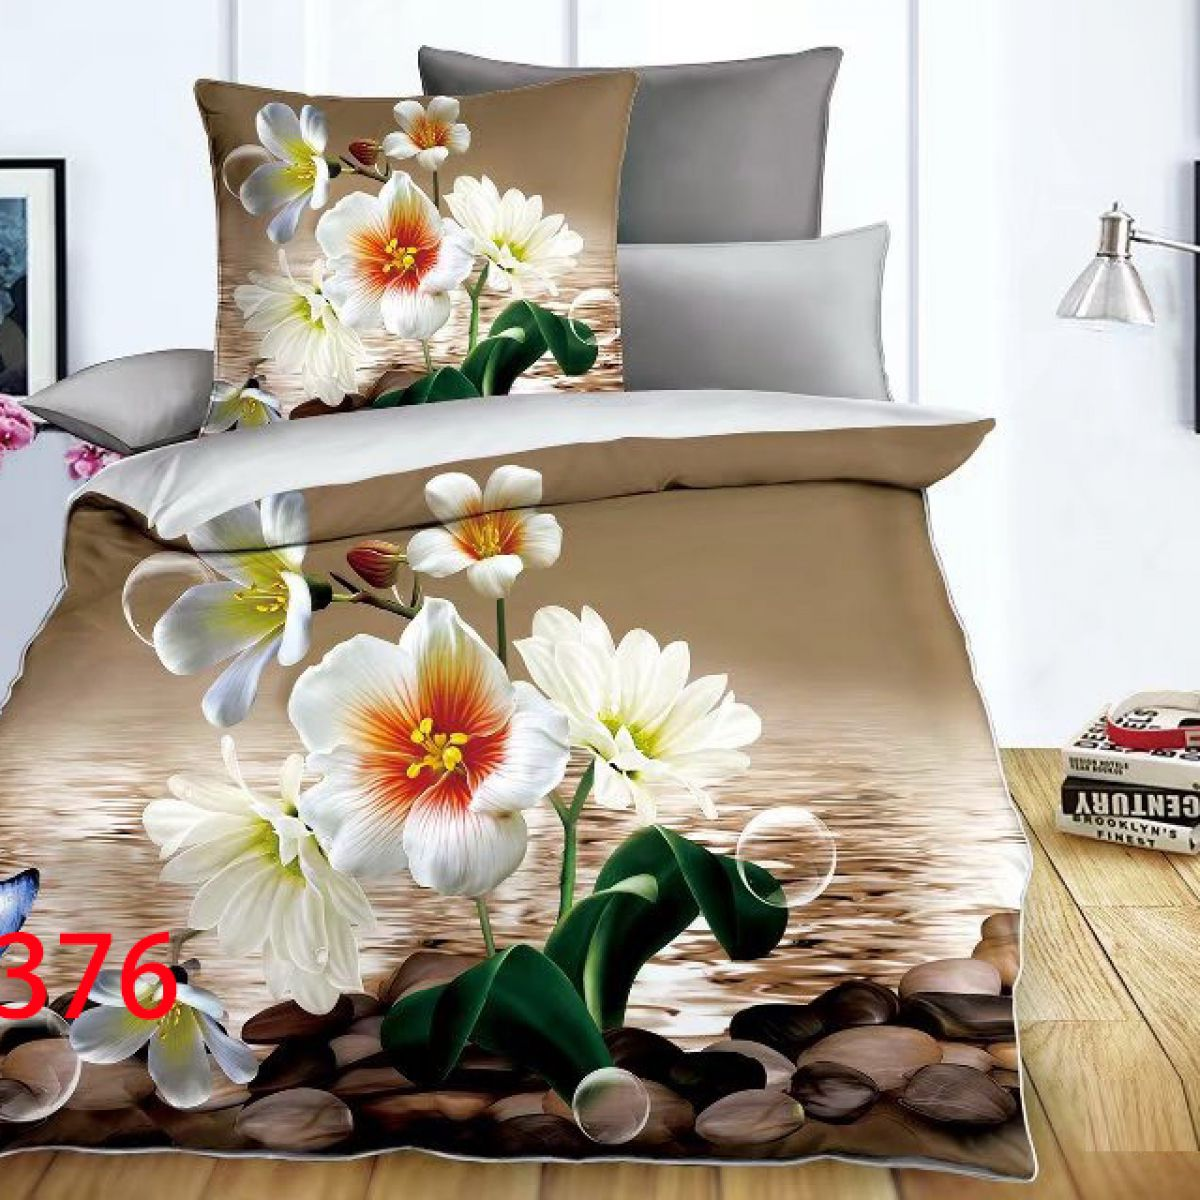 3D Beddings - Antonio - AML-376 - 160x200 cm - 4 pcs